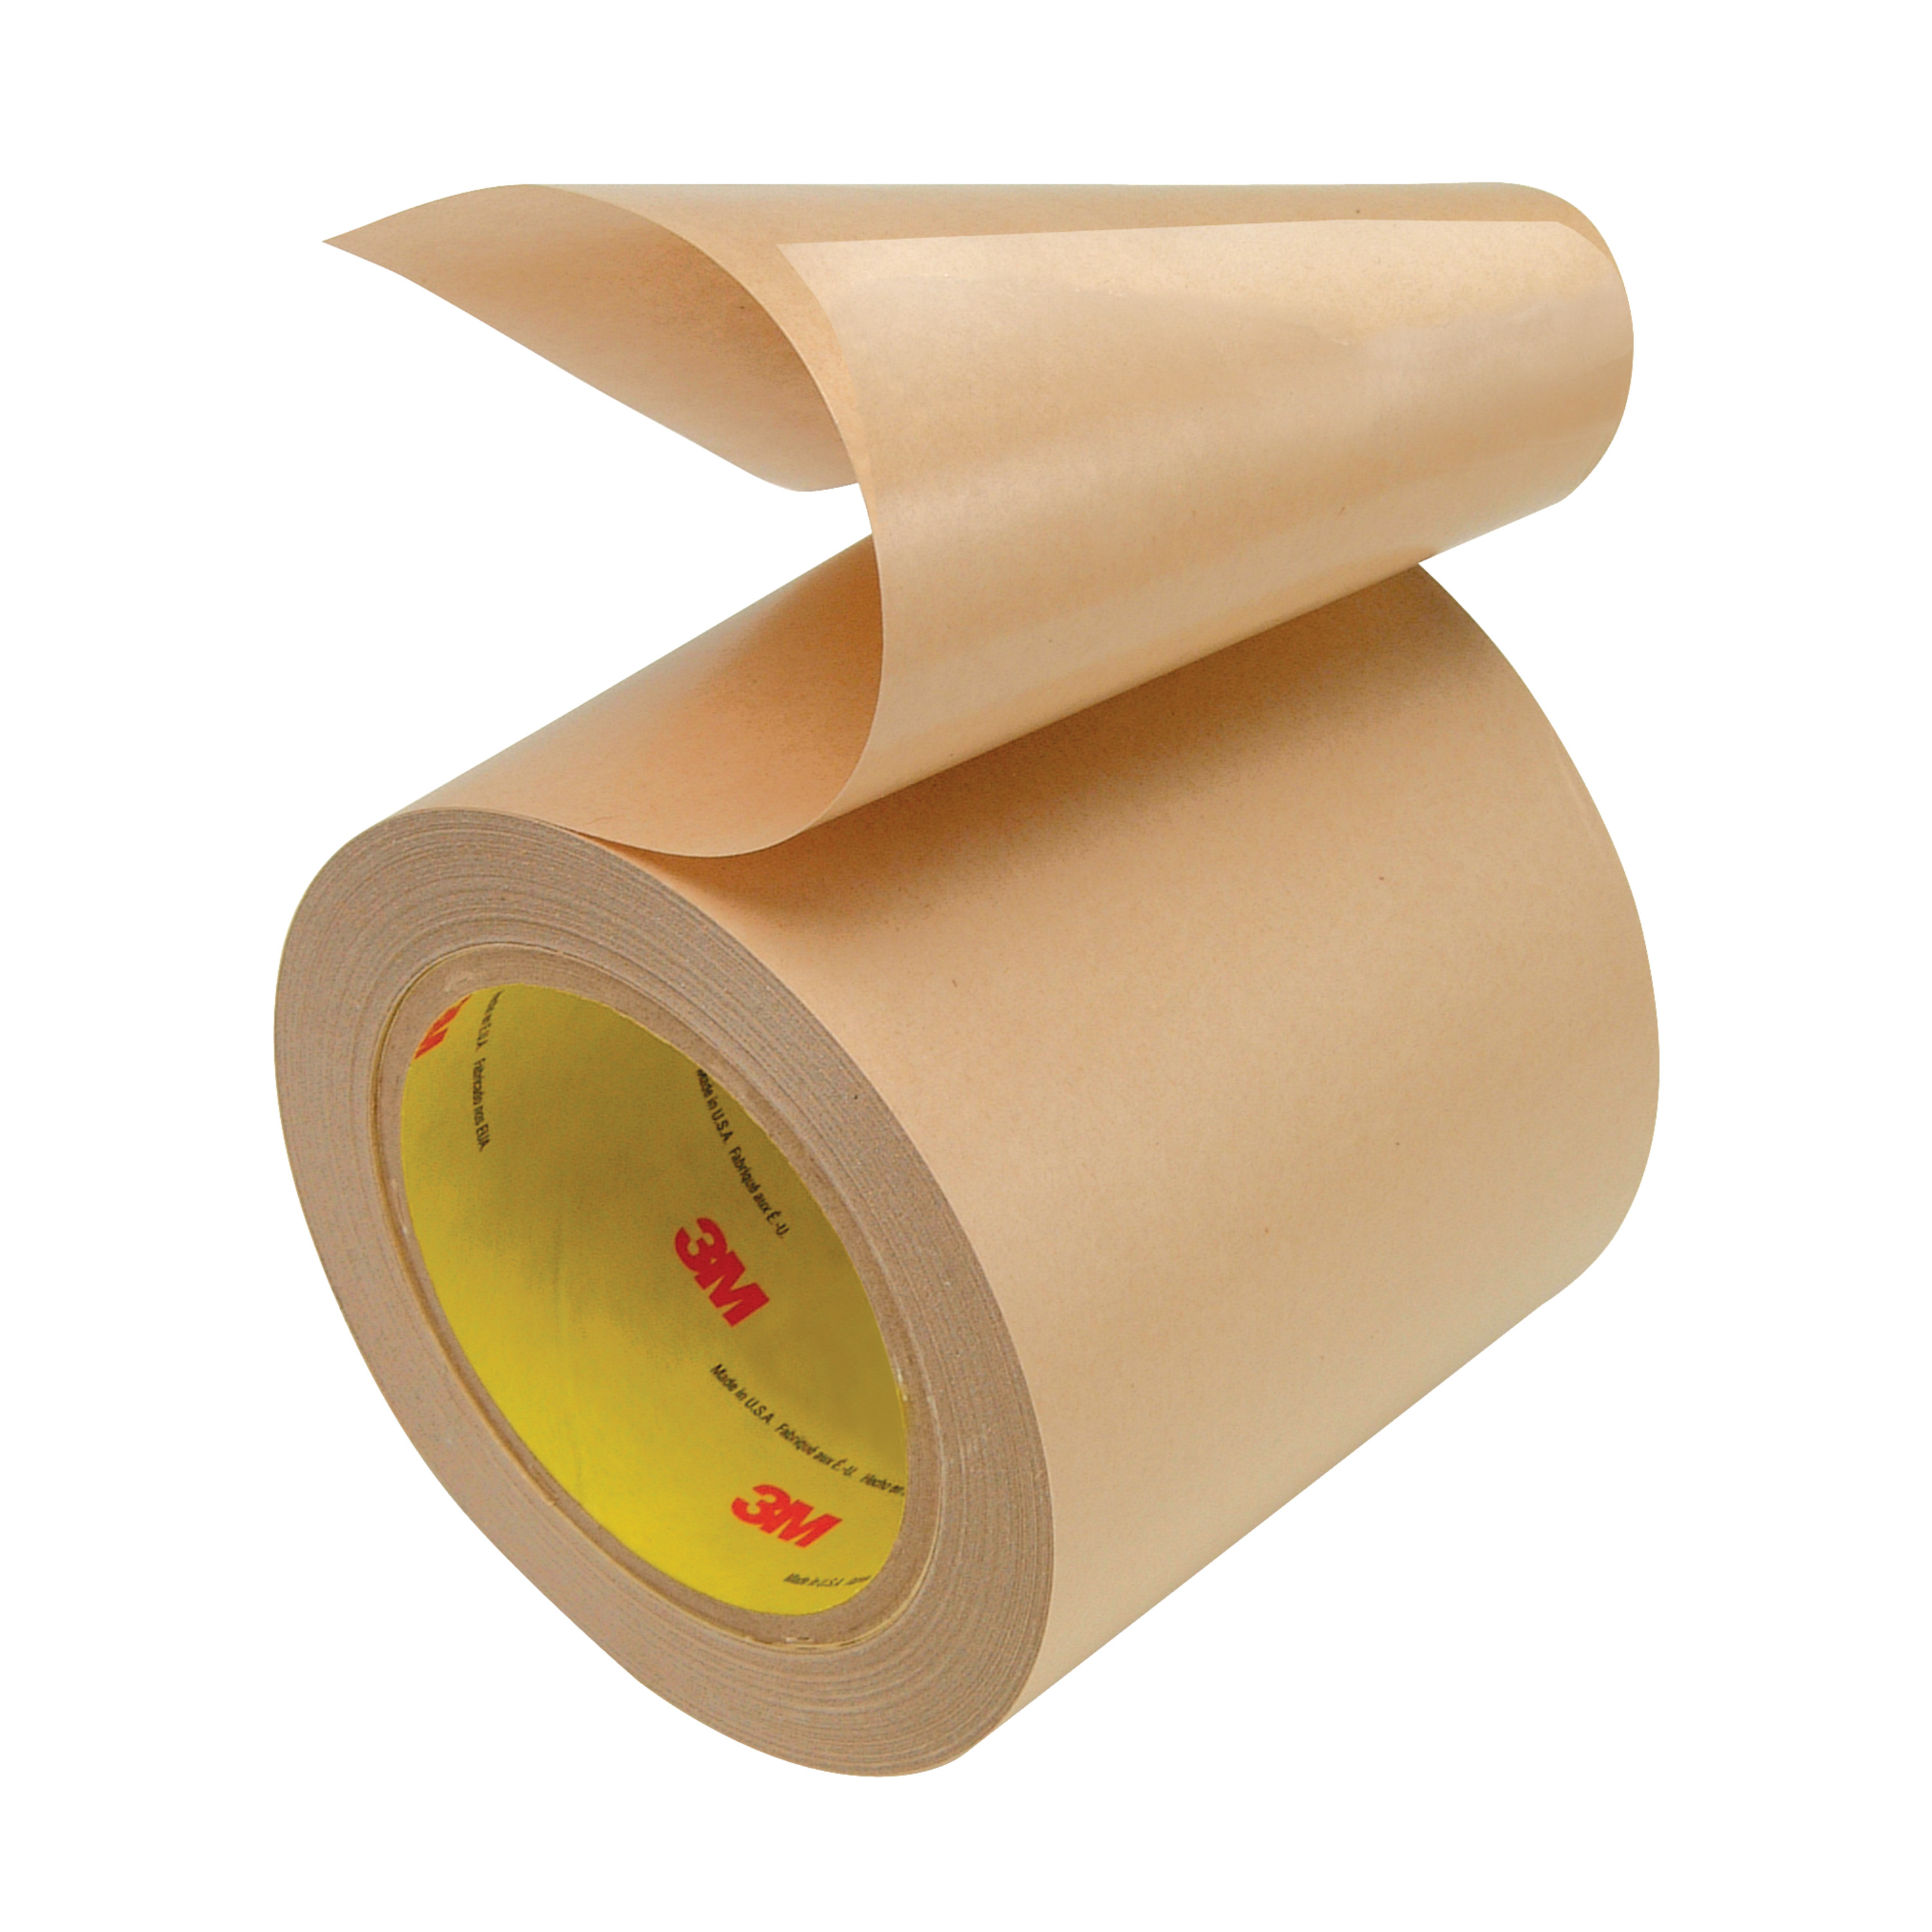 3M™ Electrically Conductive Adhesive Transfer Tape 9703, 1 in x 3 yds, 36 rolls per case Sample